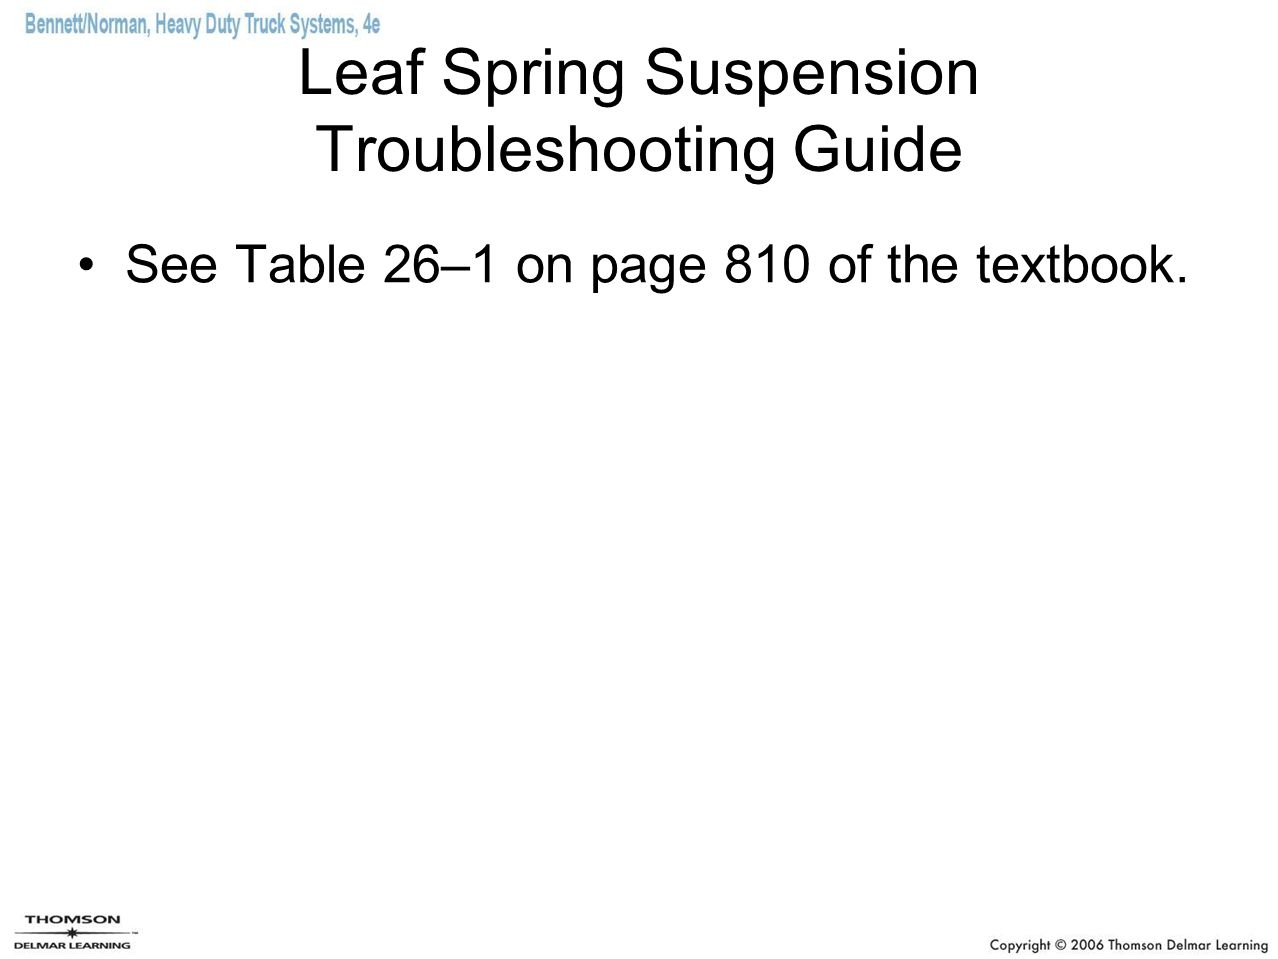 Leaf Spring Suspension Troubleshooting Guide See Table 26–1 on page 810 of the textbook.